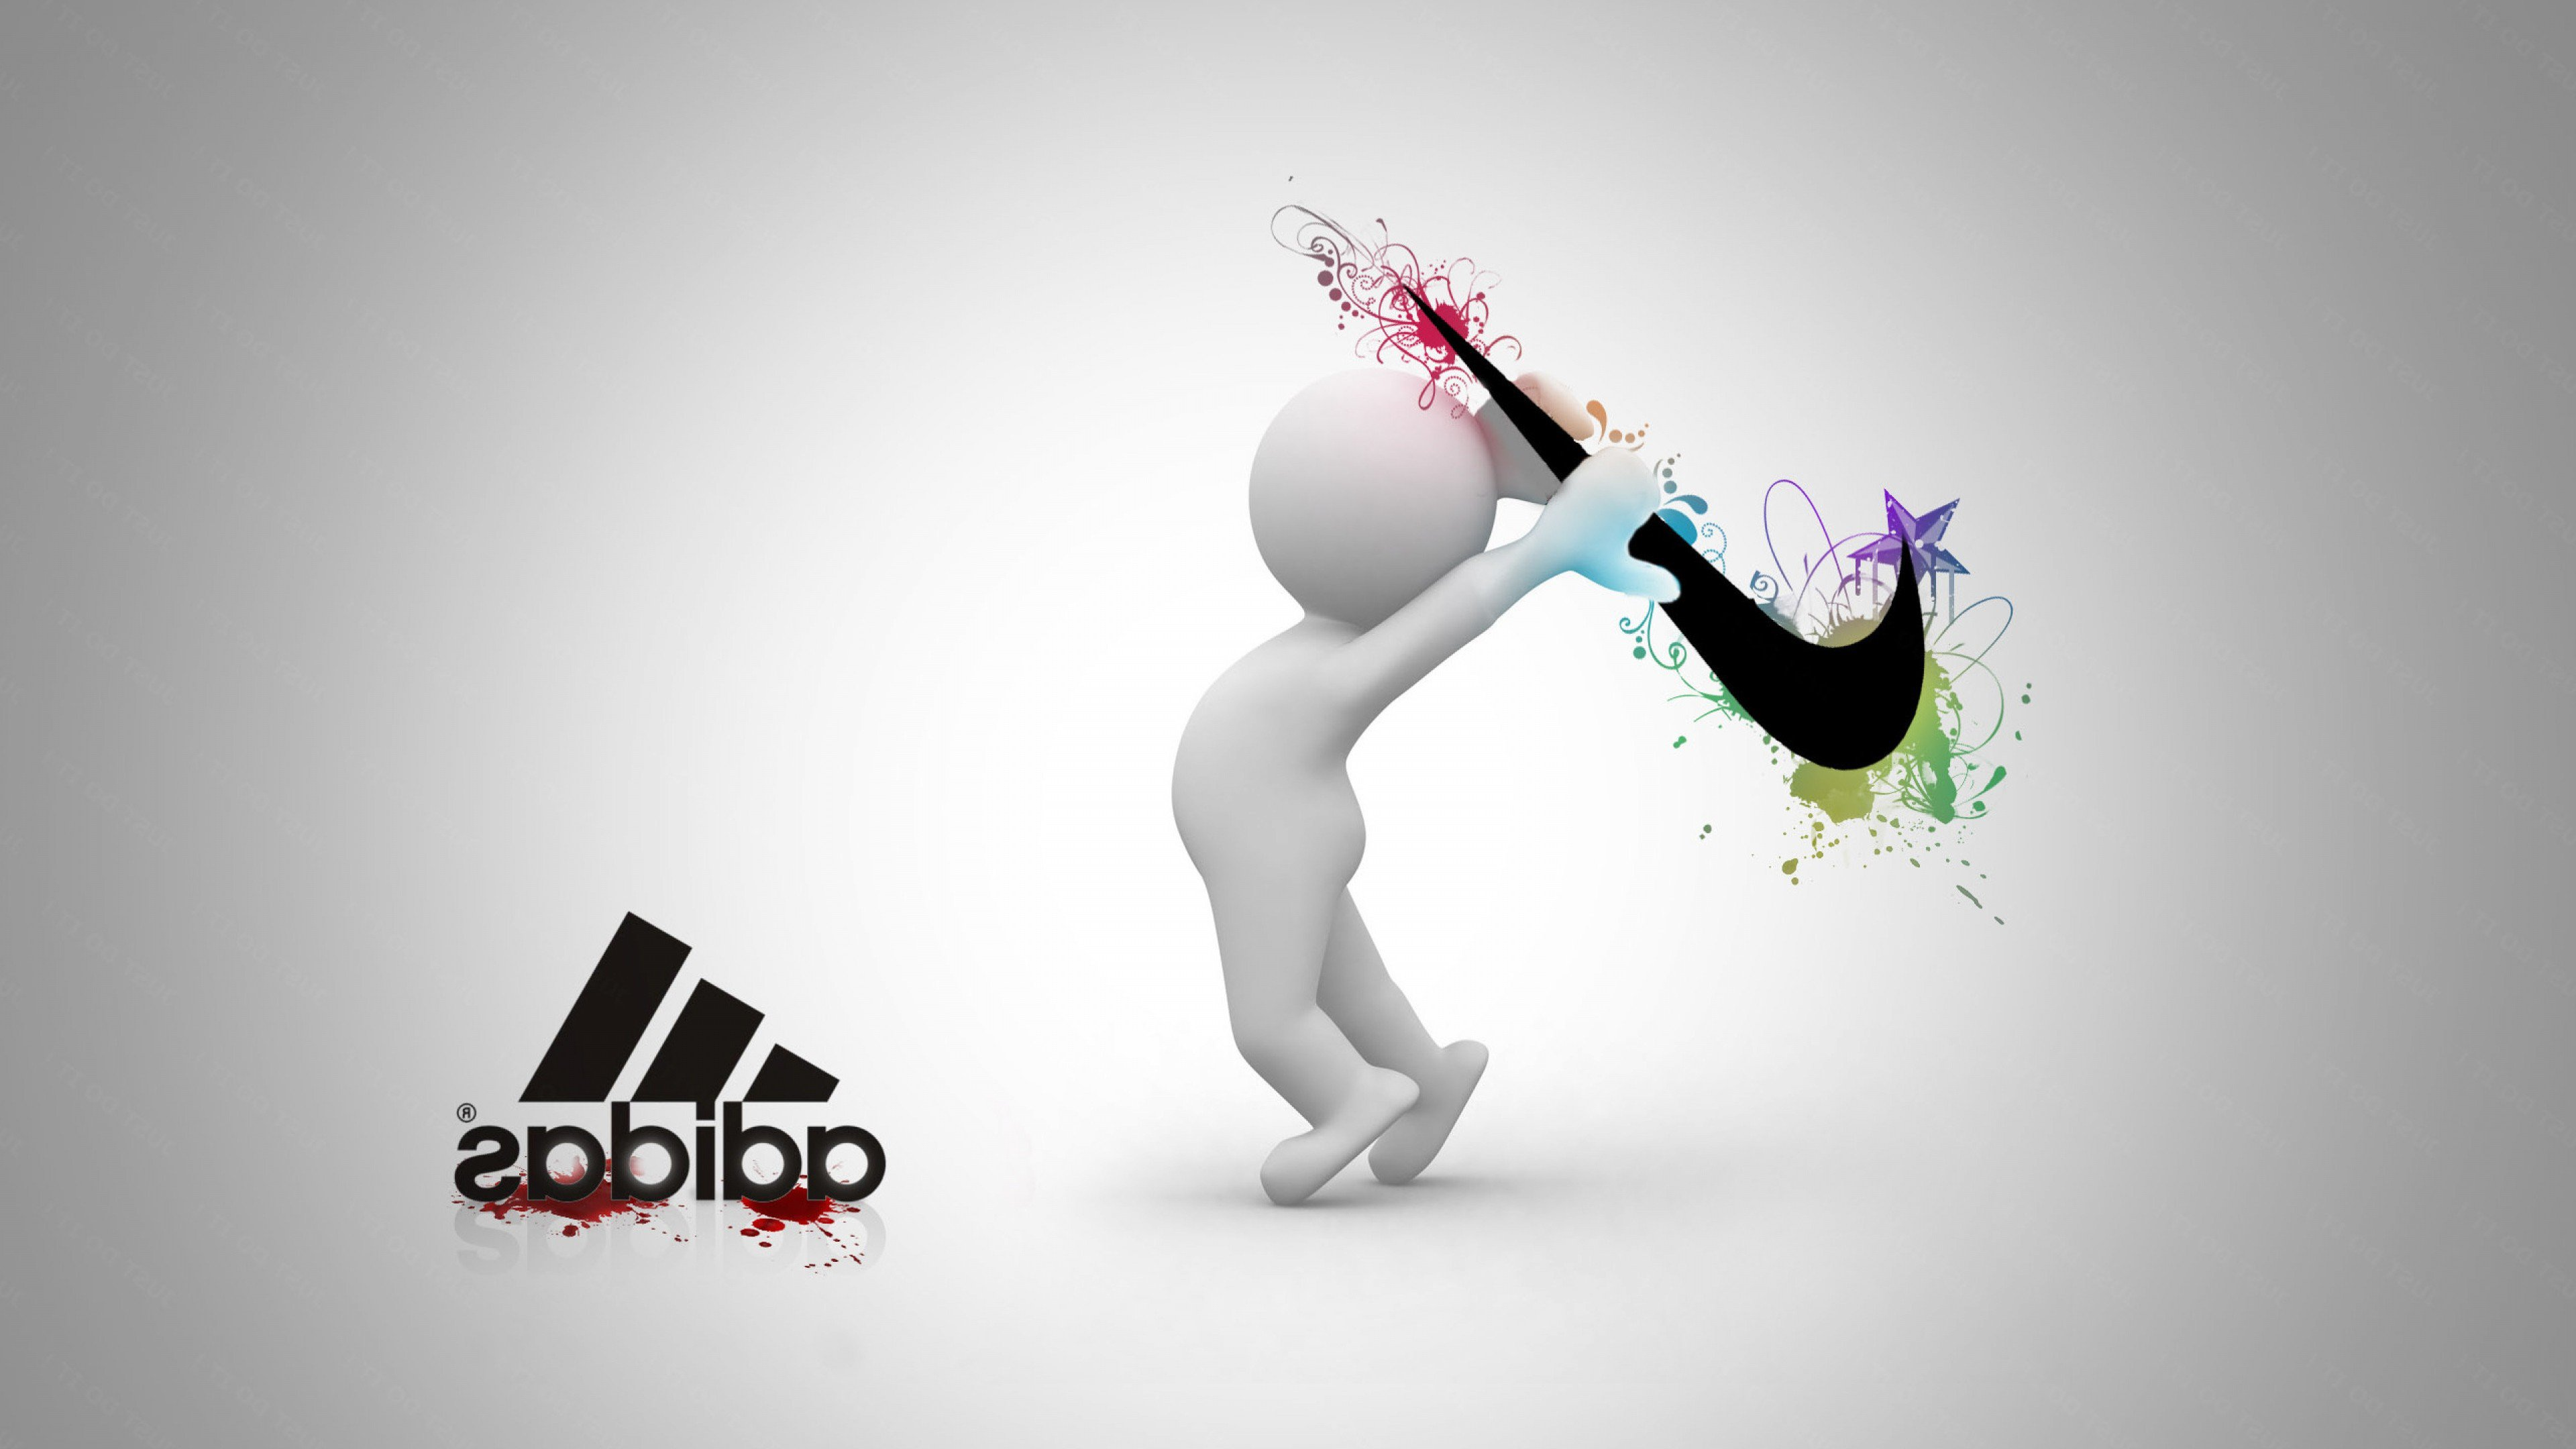 Cool nike vs adidas wallpapers hd wallpaper cool nike vs adidas wallpapers hd voltagebd Gallery